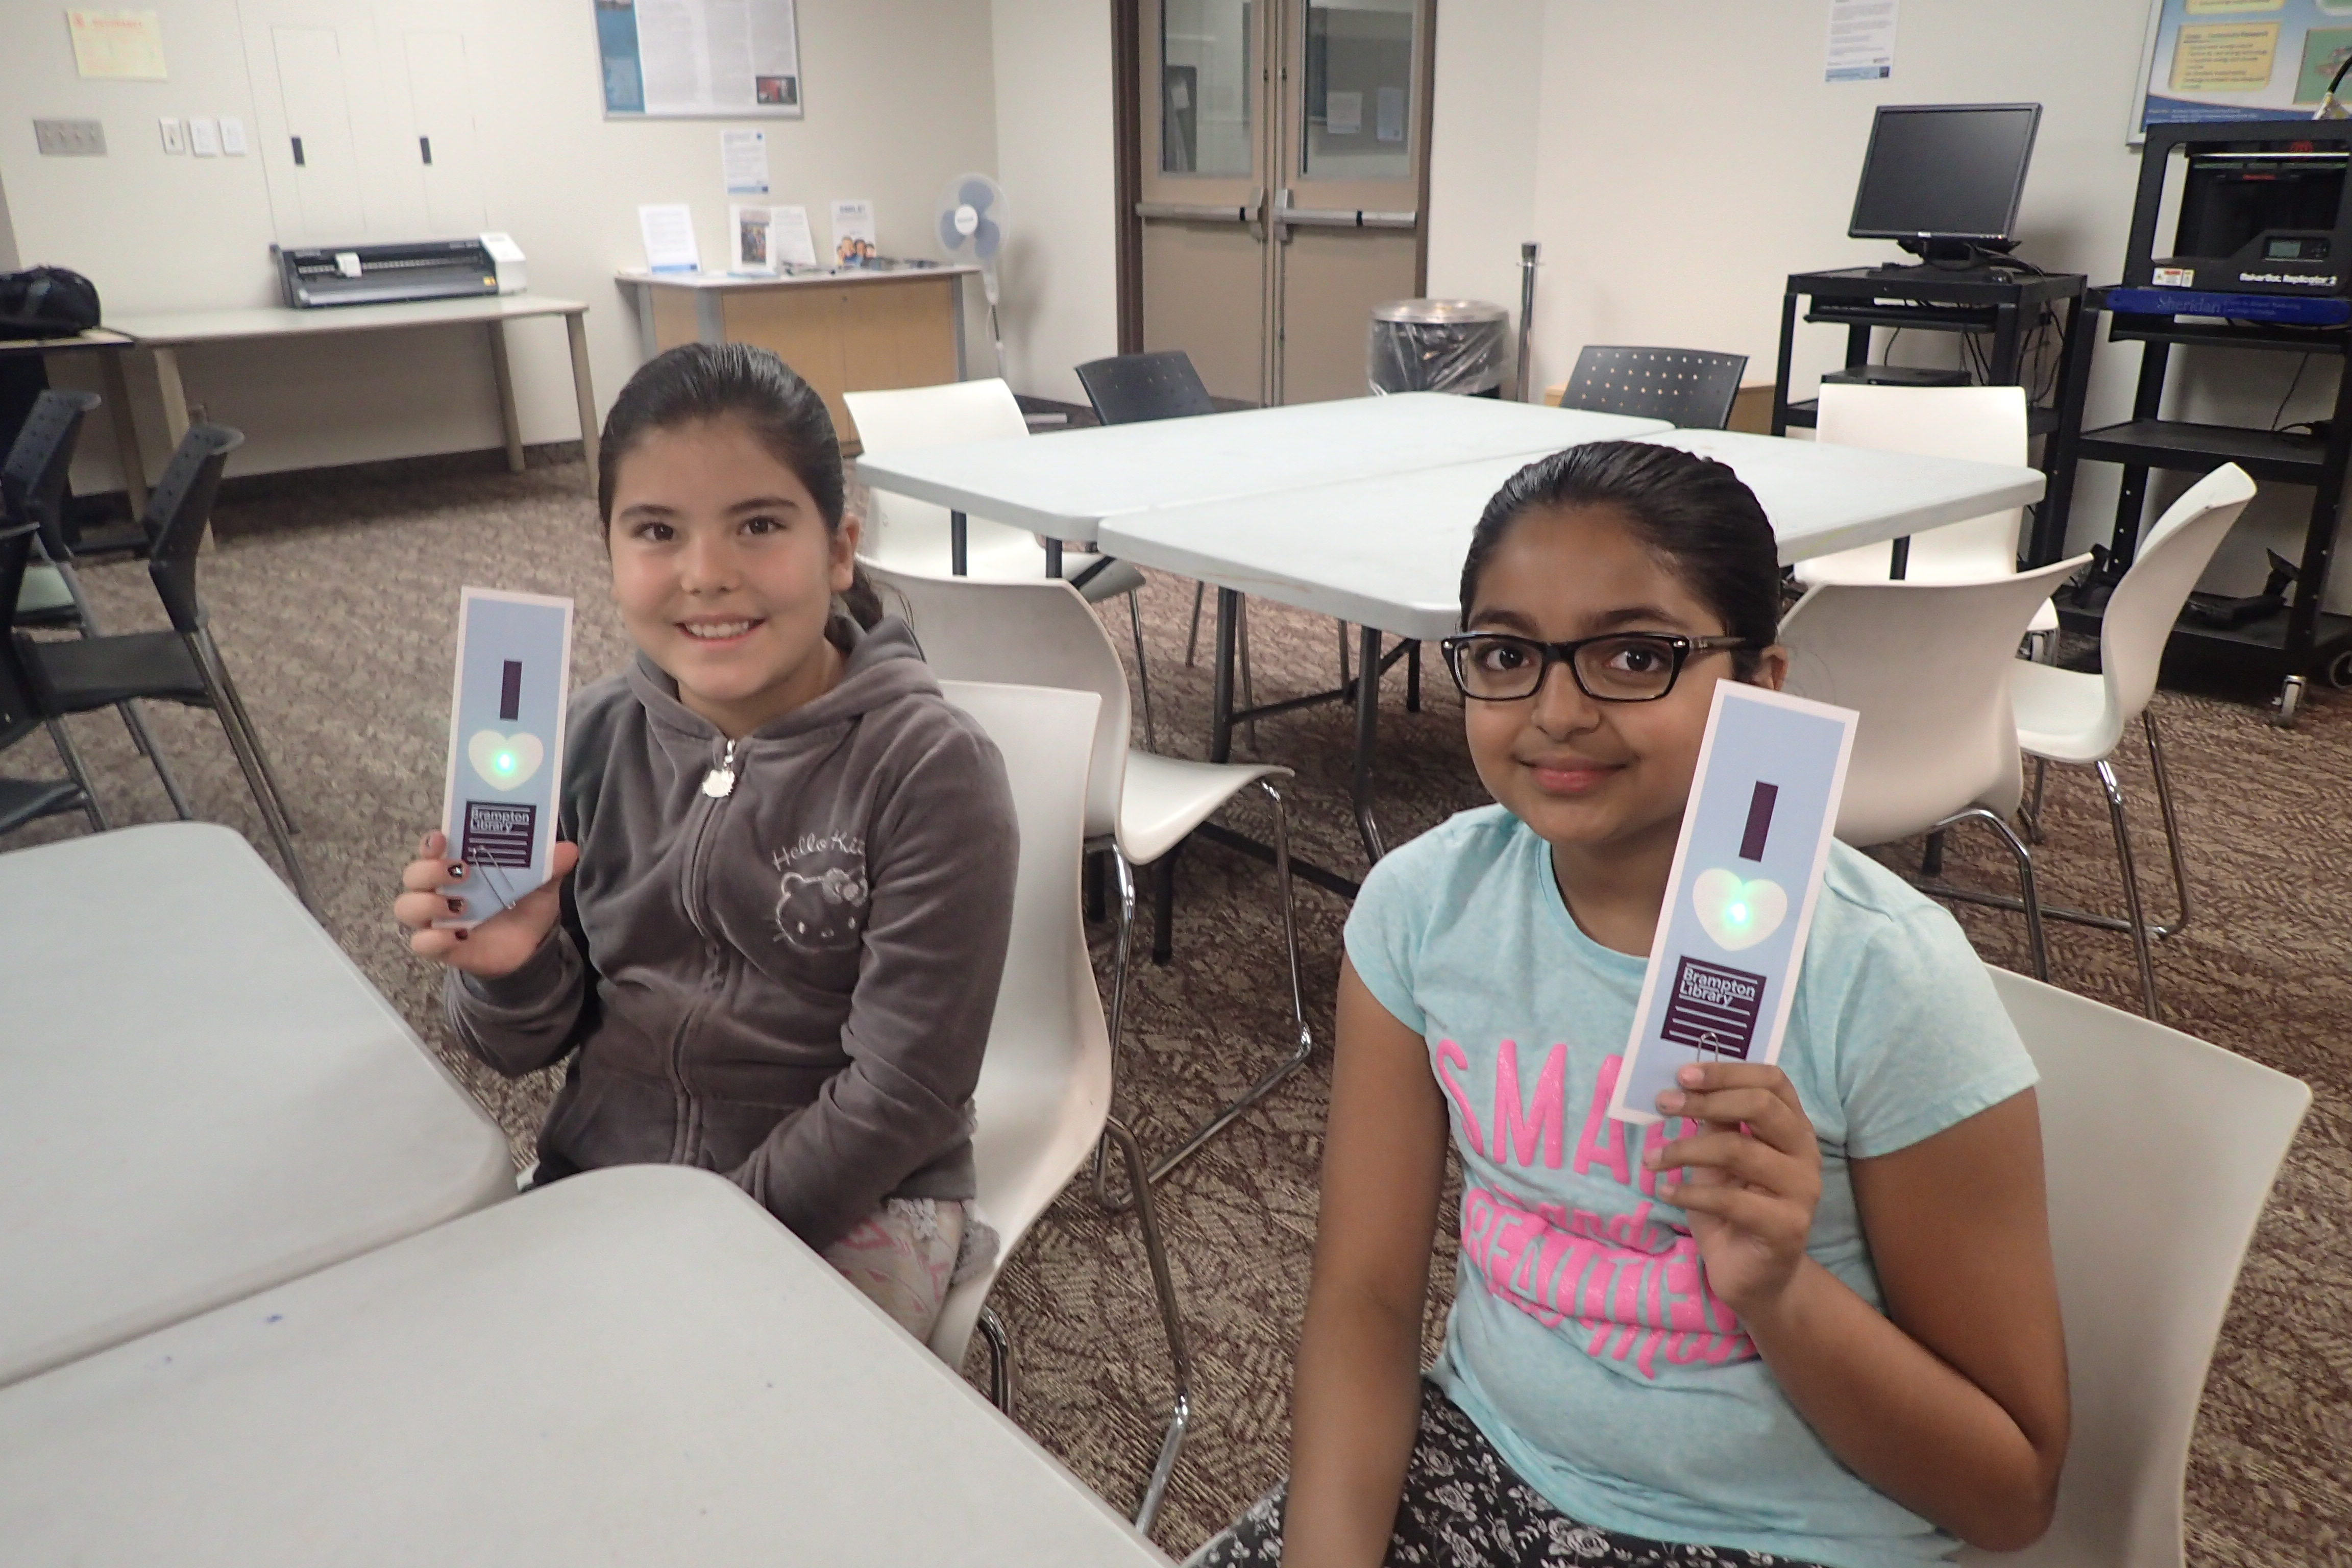 Two students holding Brampton Library bookmarks